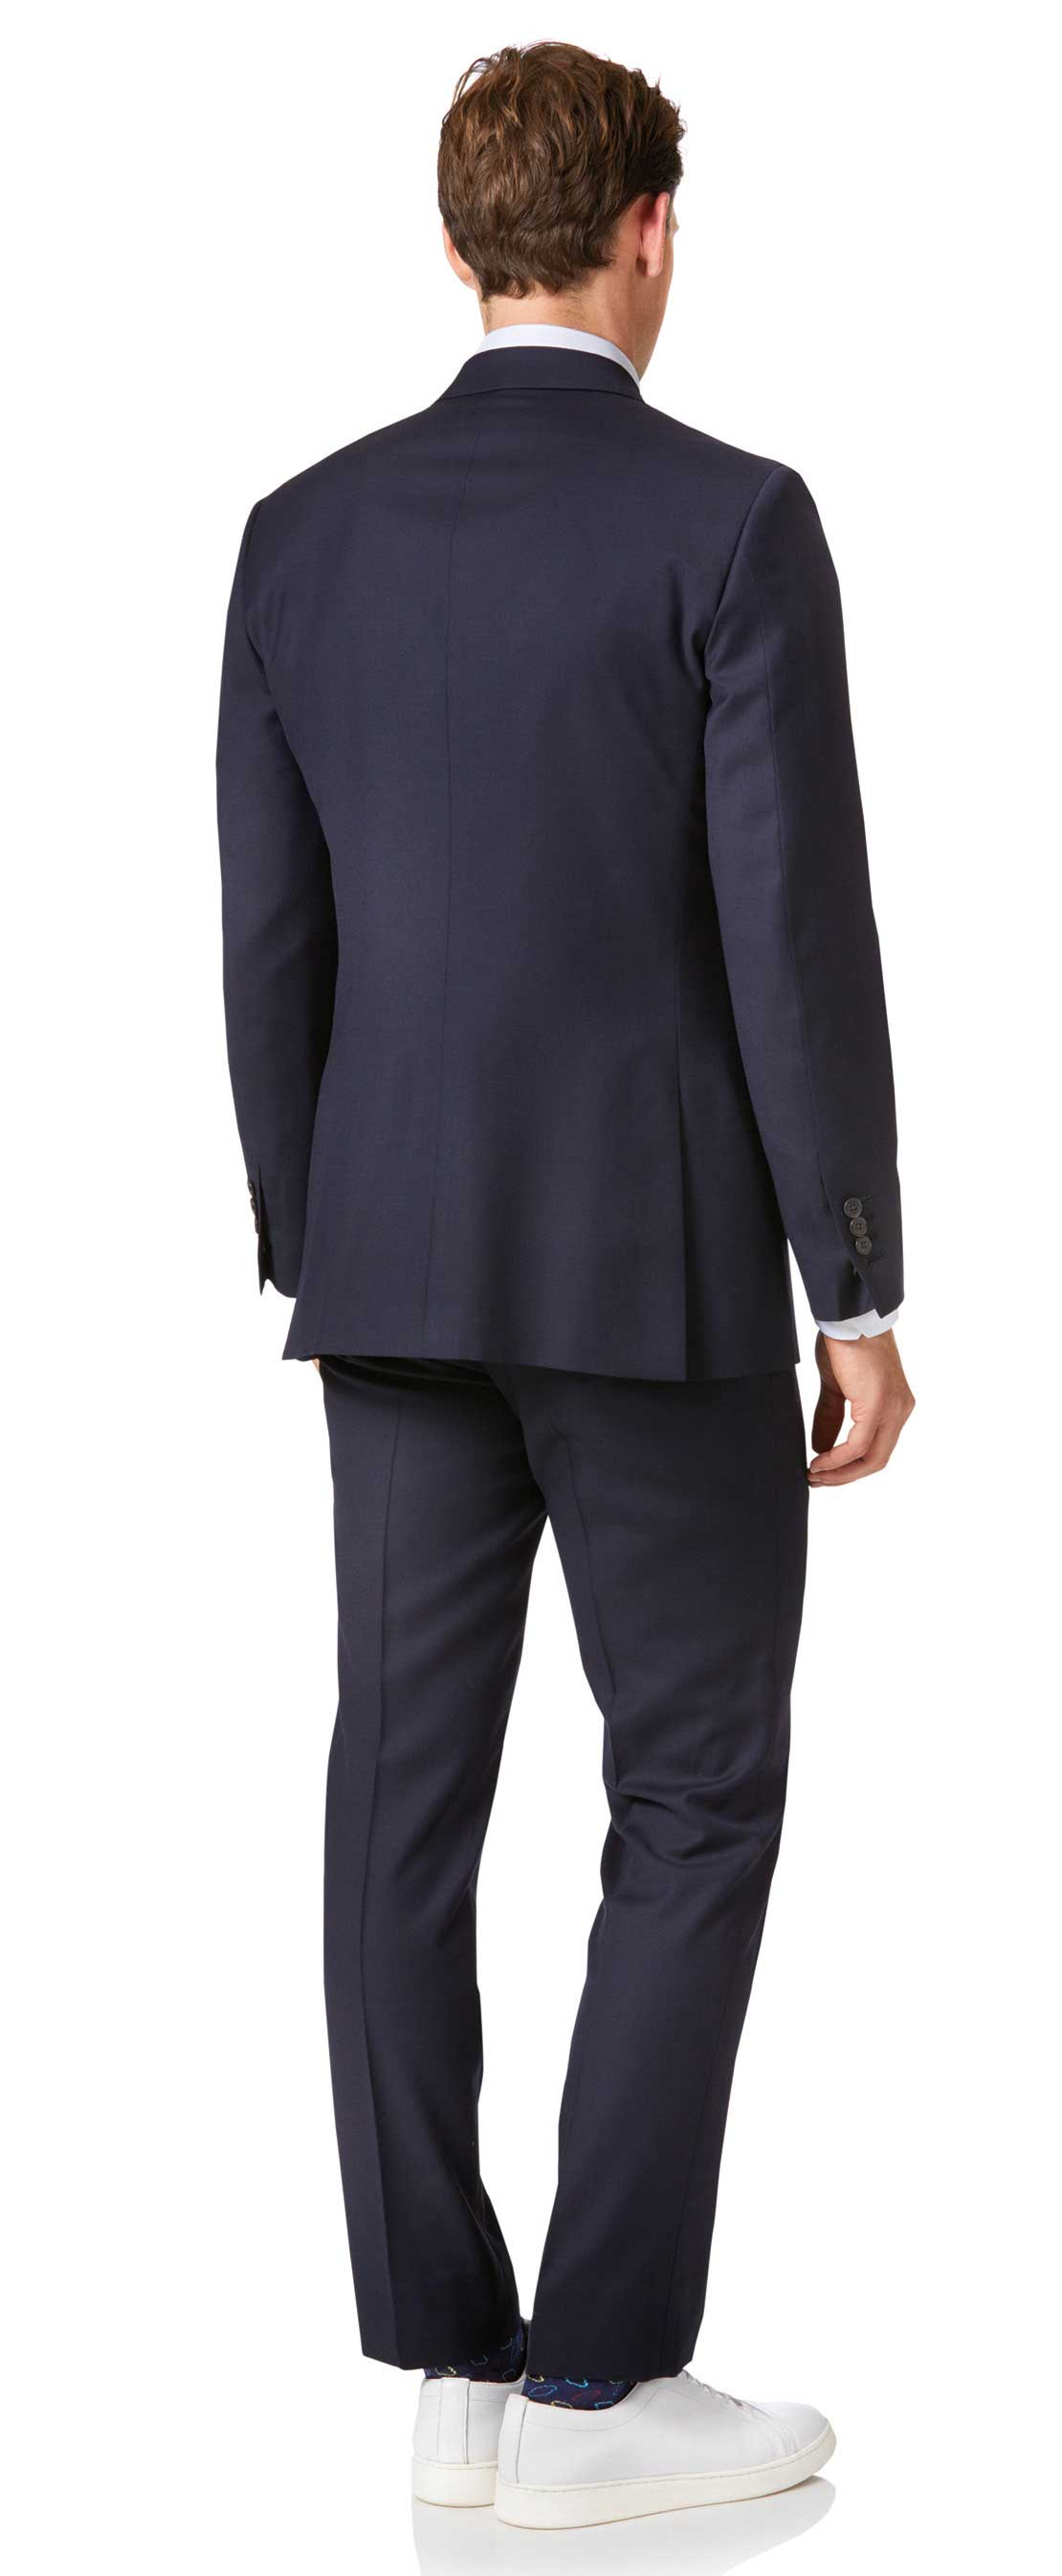 Navy slim fit double breasted twill business suit jacket